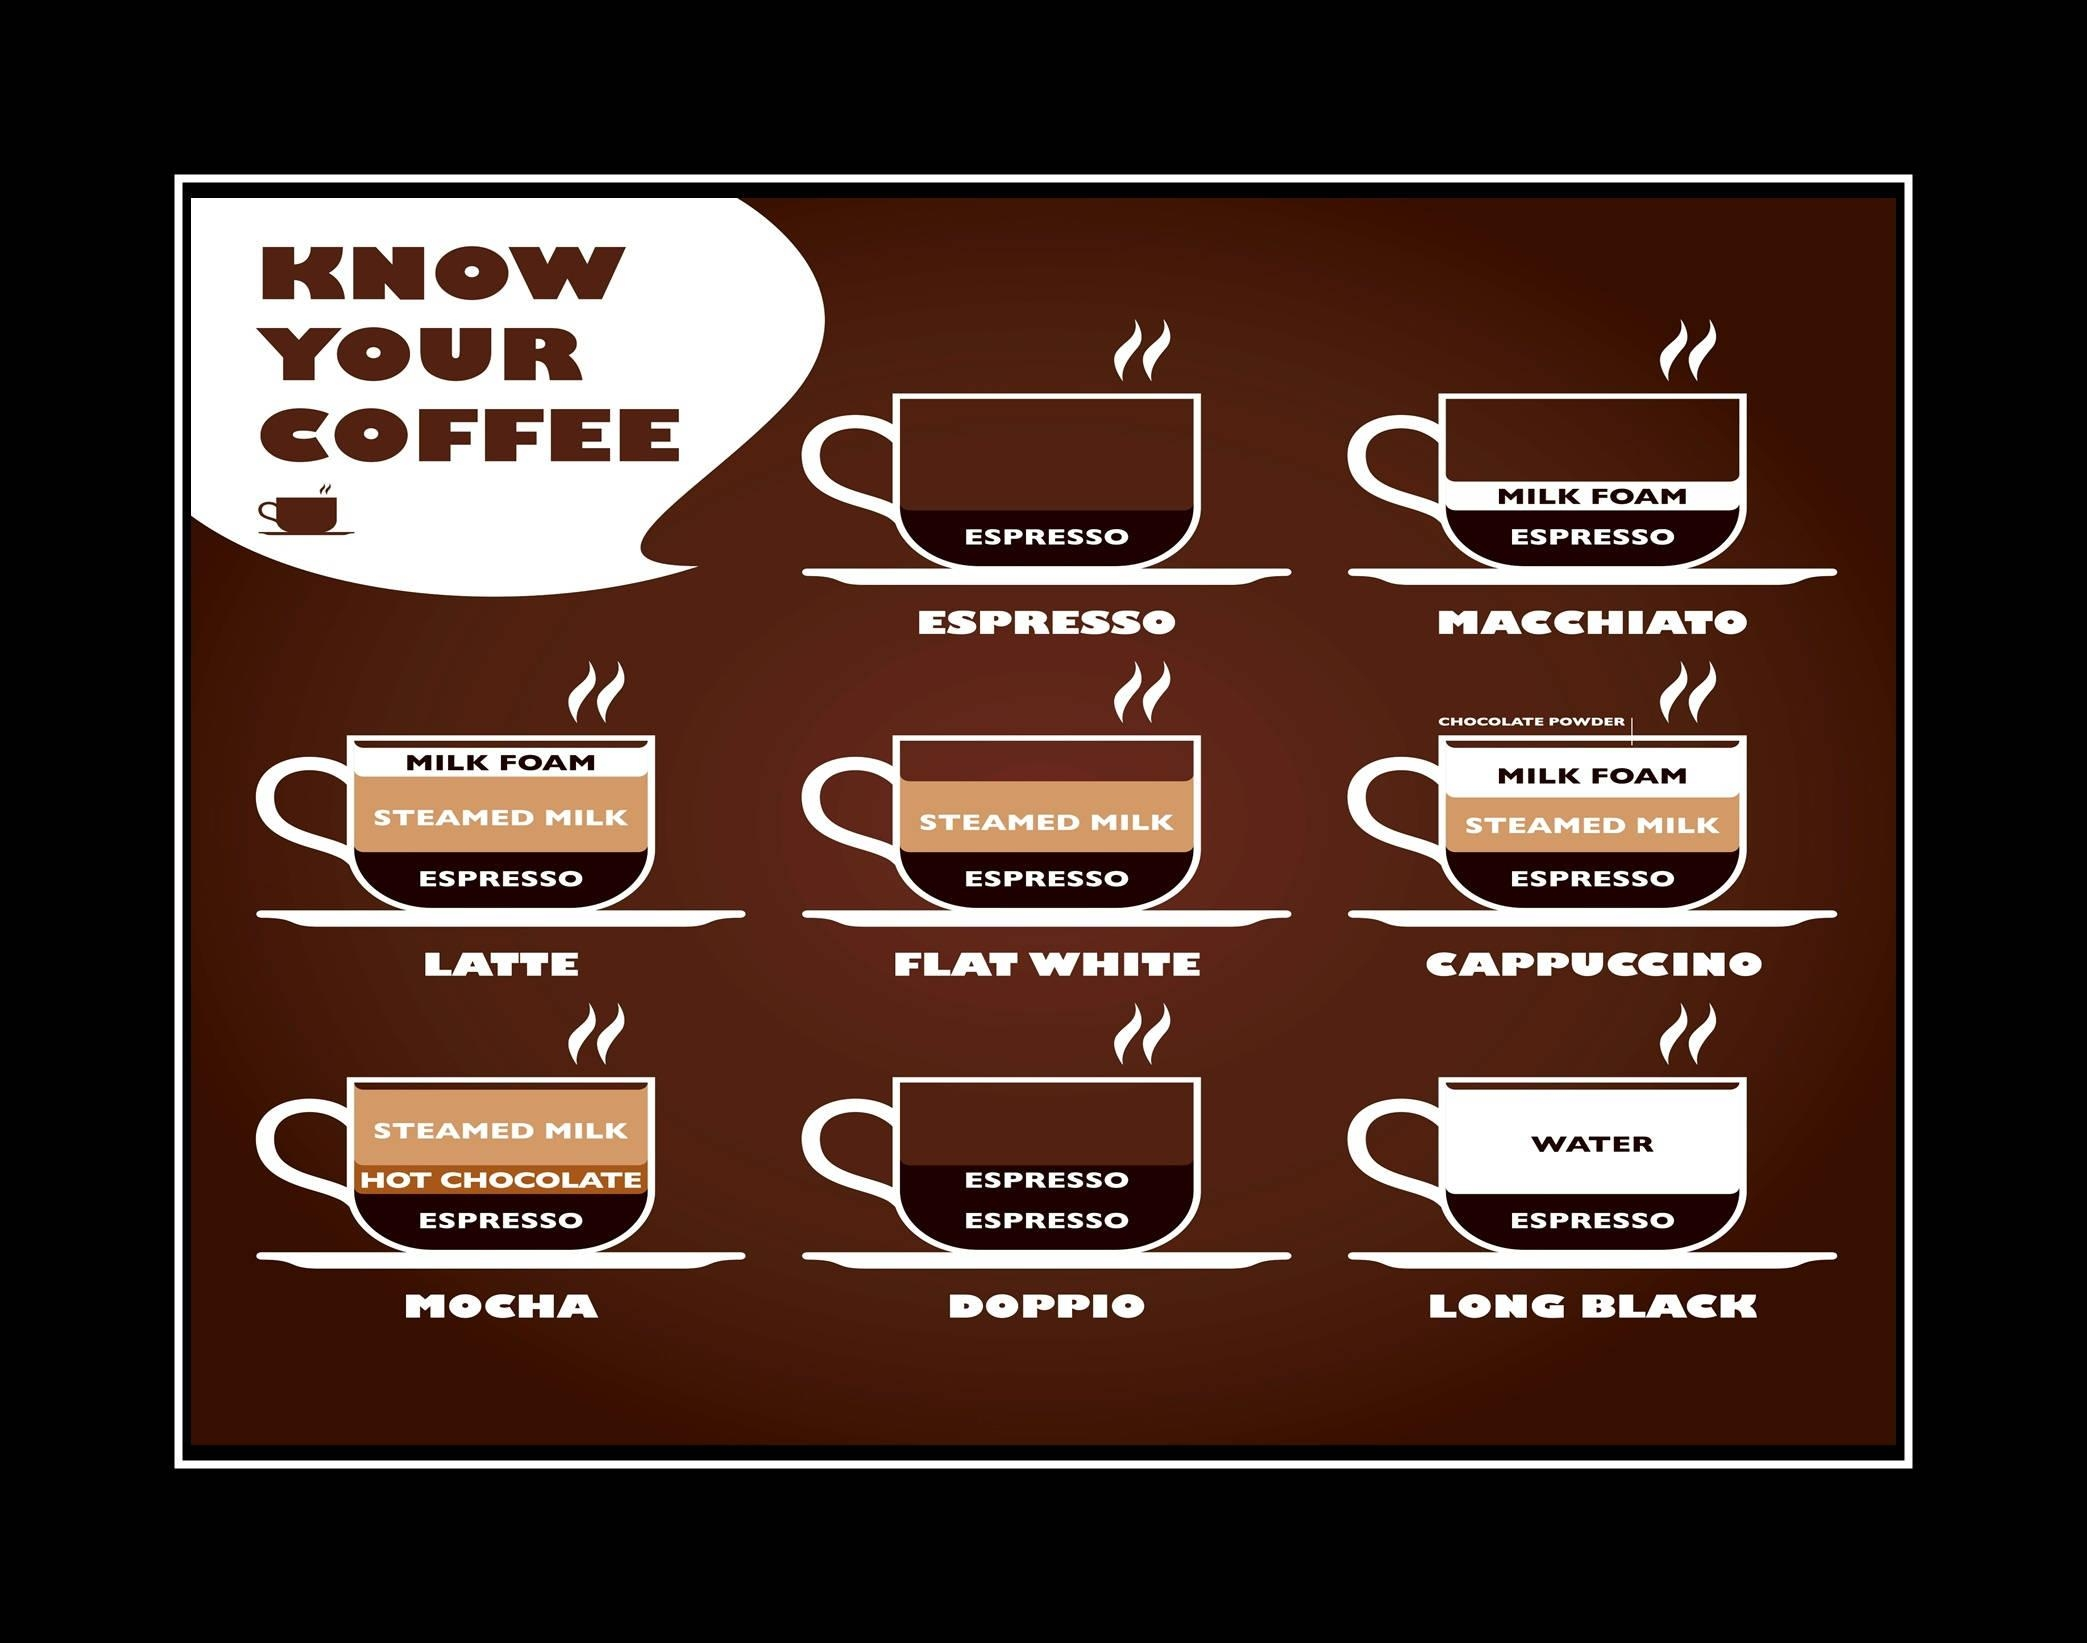 Know Your Coffee Poster, Kitchen Wall Decor, Cafe Wall Art Gift Intended For Cafe Latte Kitchen Wall Art (View 20 of 20)